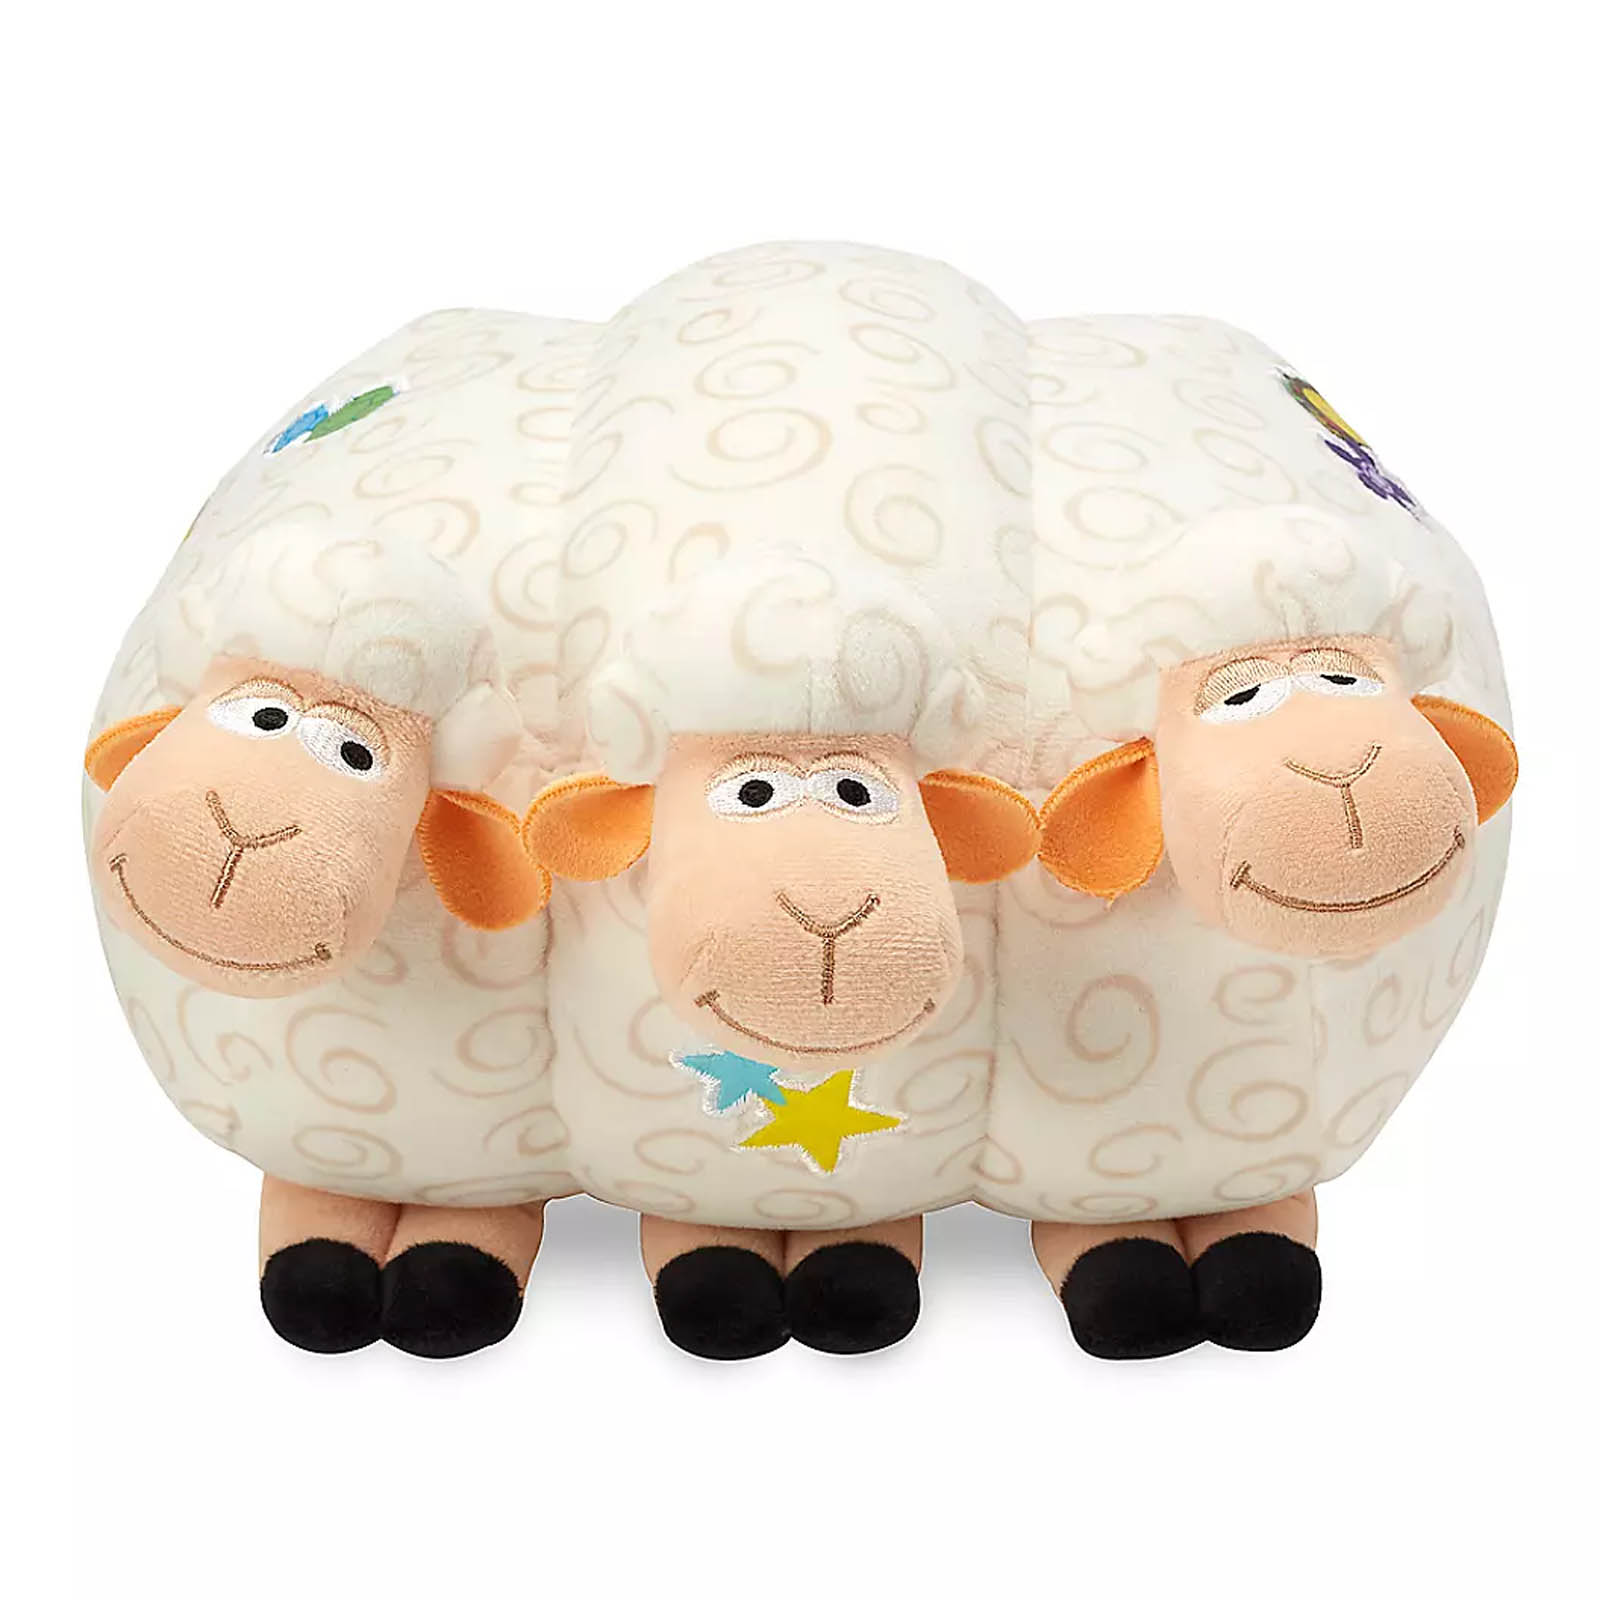 Disney Toy Story 4 Bo Peep Billy, Goat, and Gruff Plush Soft Toy